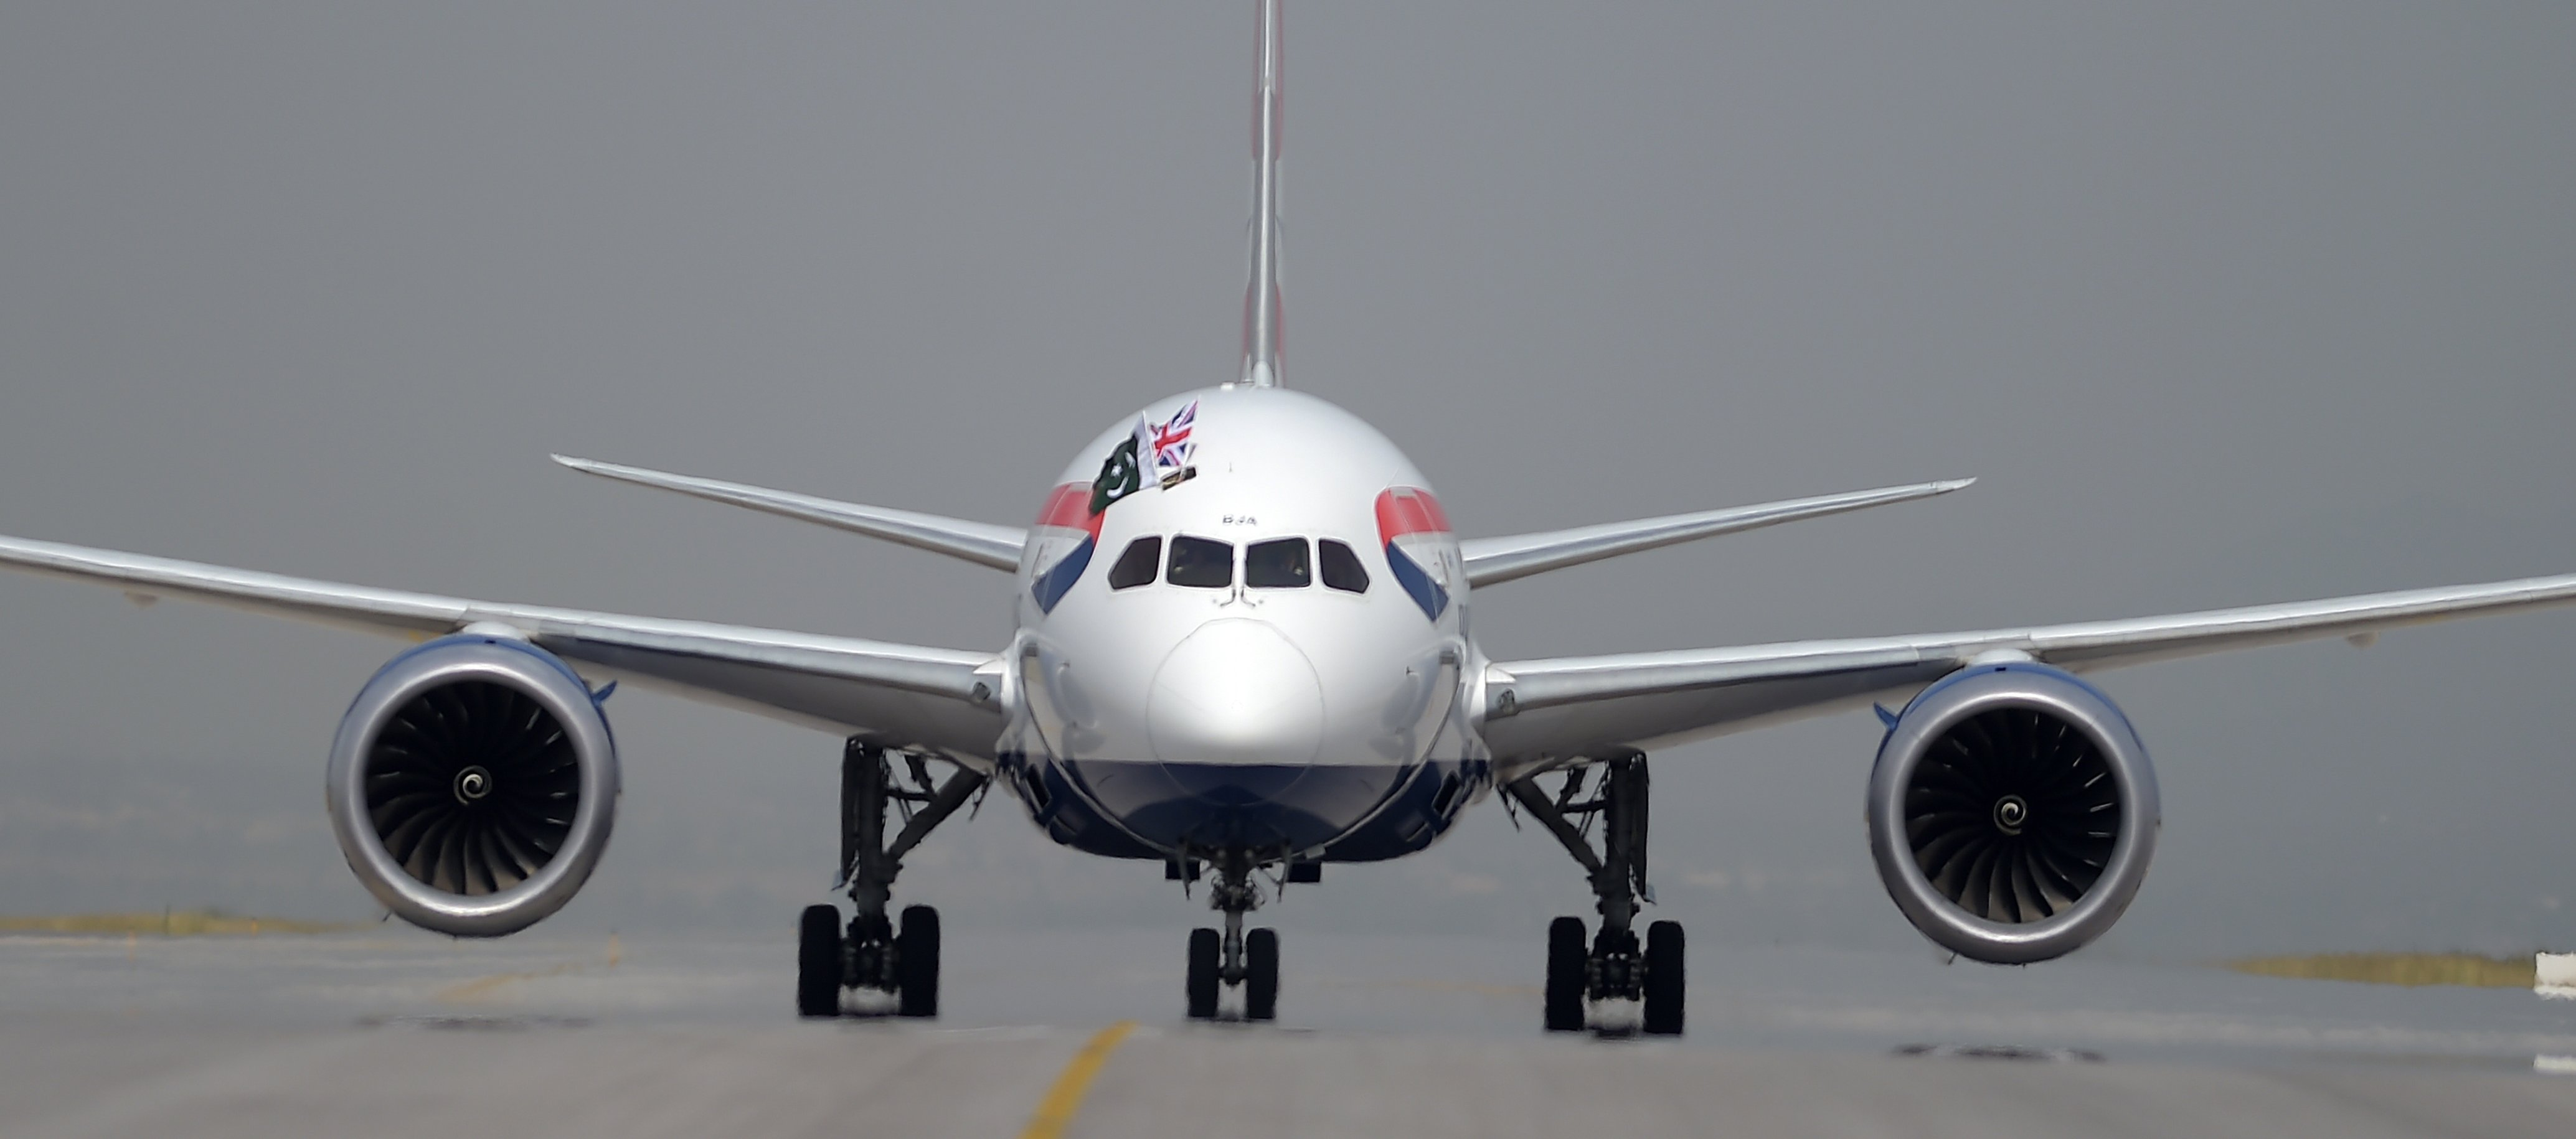 British Airways is going to appeal against Customers' data breach